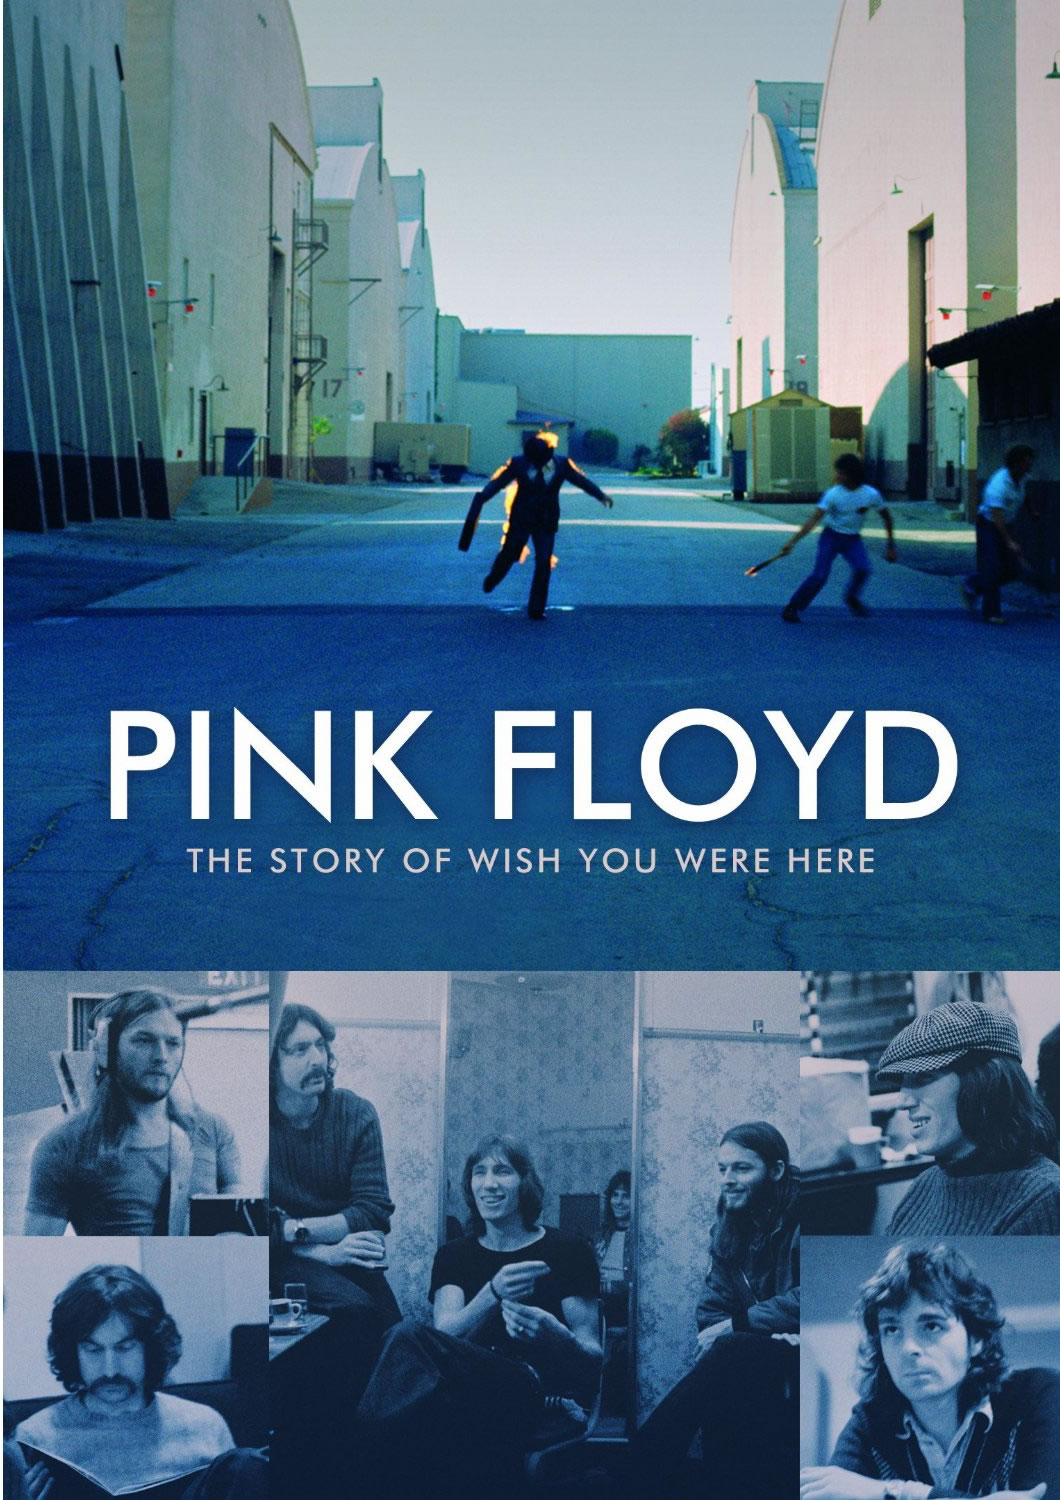 BBC 4 TV To Broadcast Story of Wish You Were Here